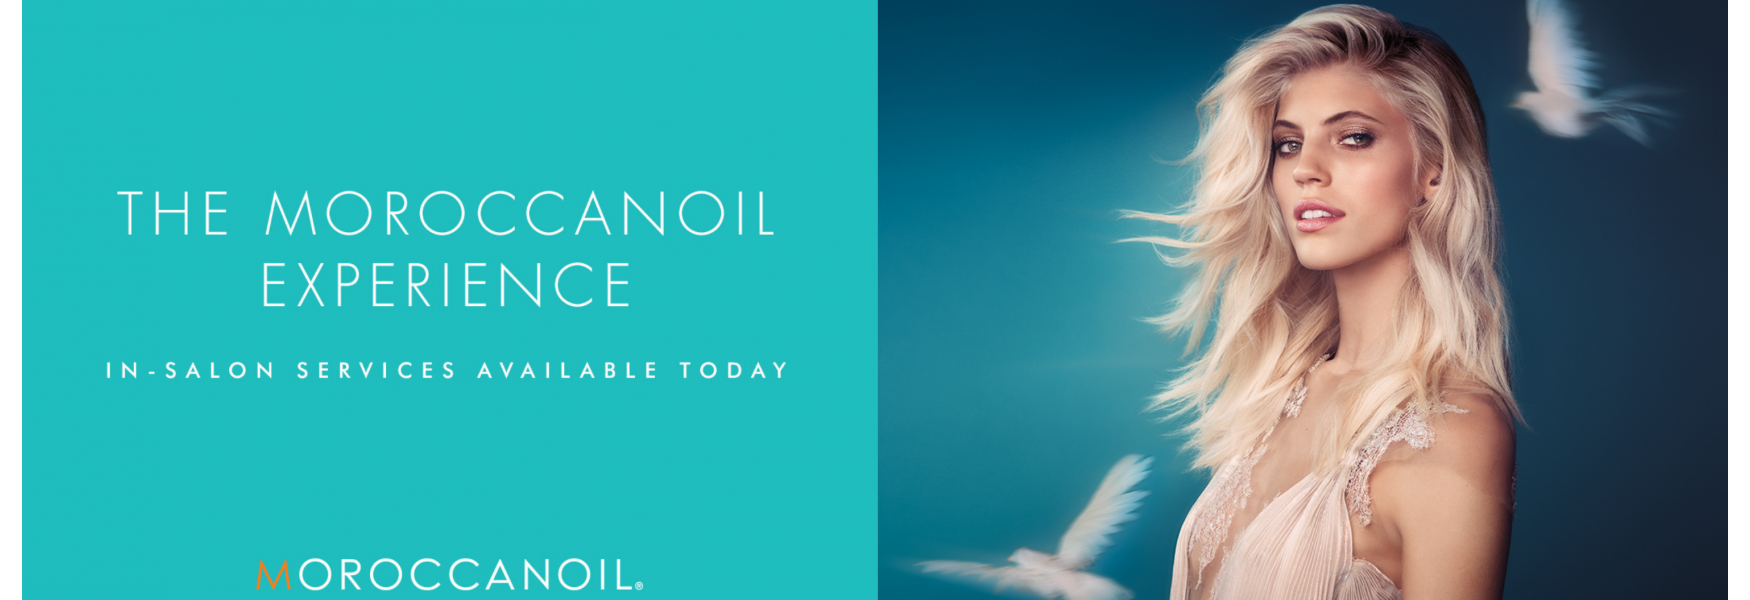 Moroccan Oil Webpage Banner #1